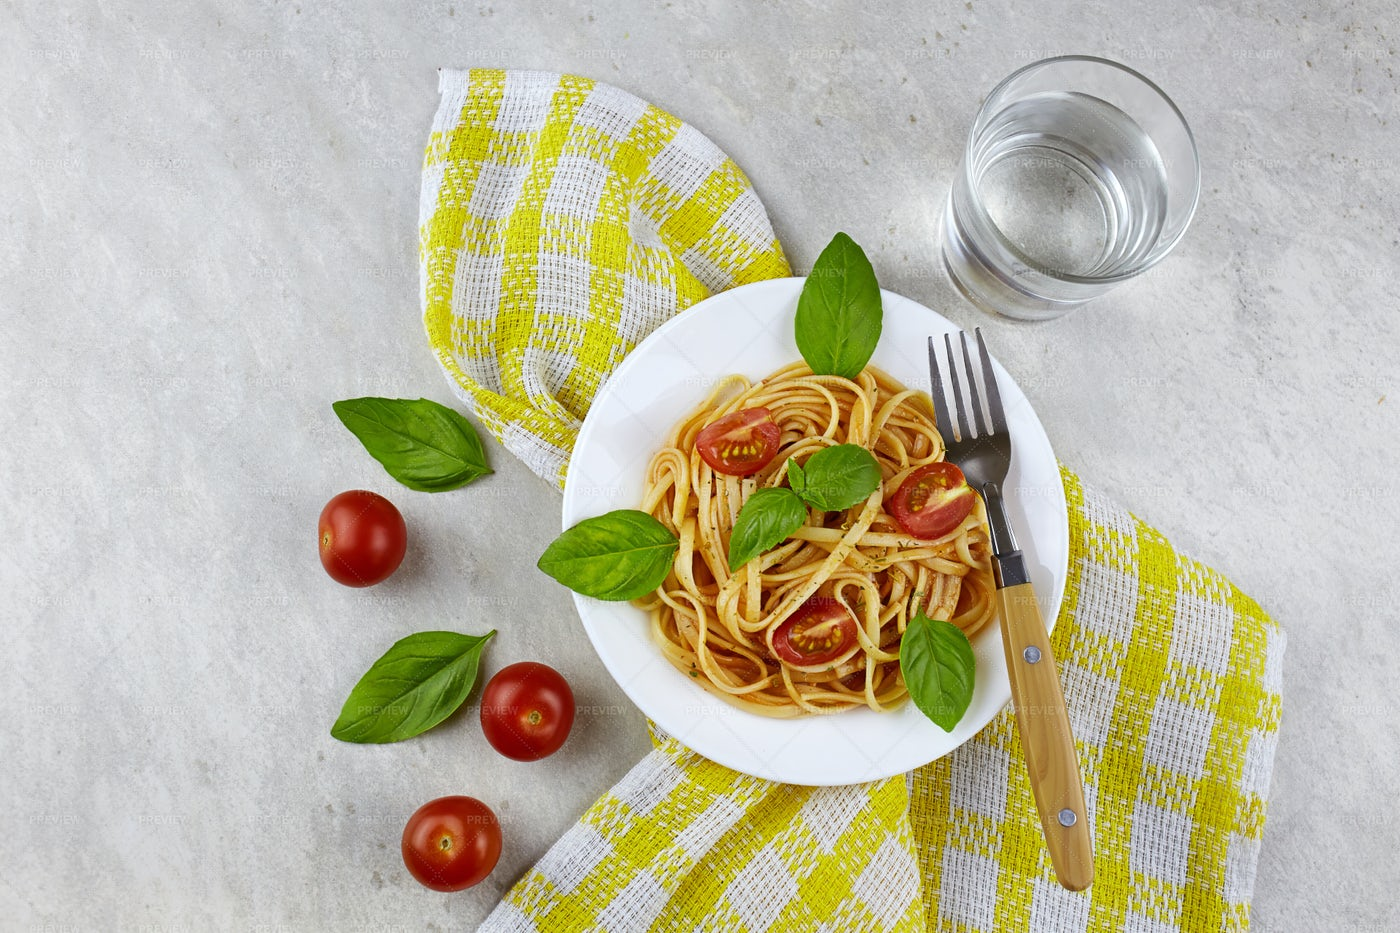 Pasta With Tomatoes: Stock Photos